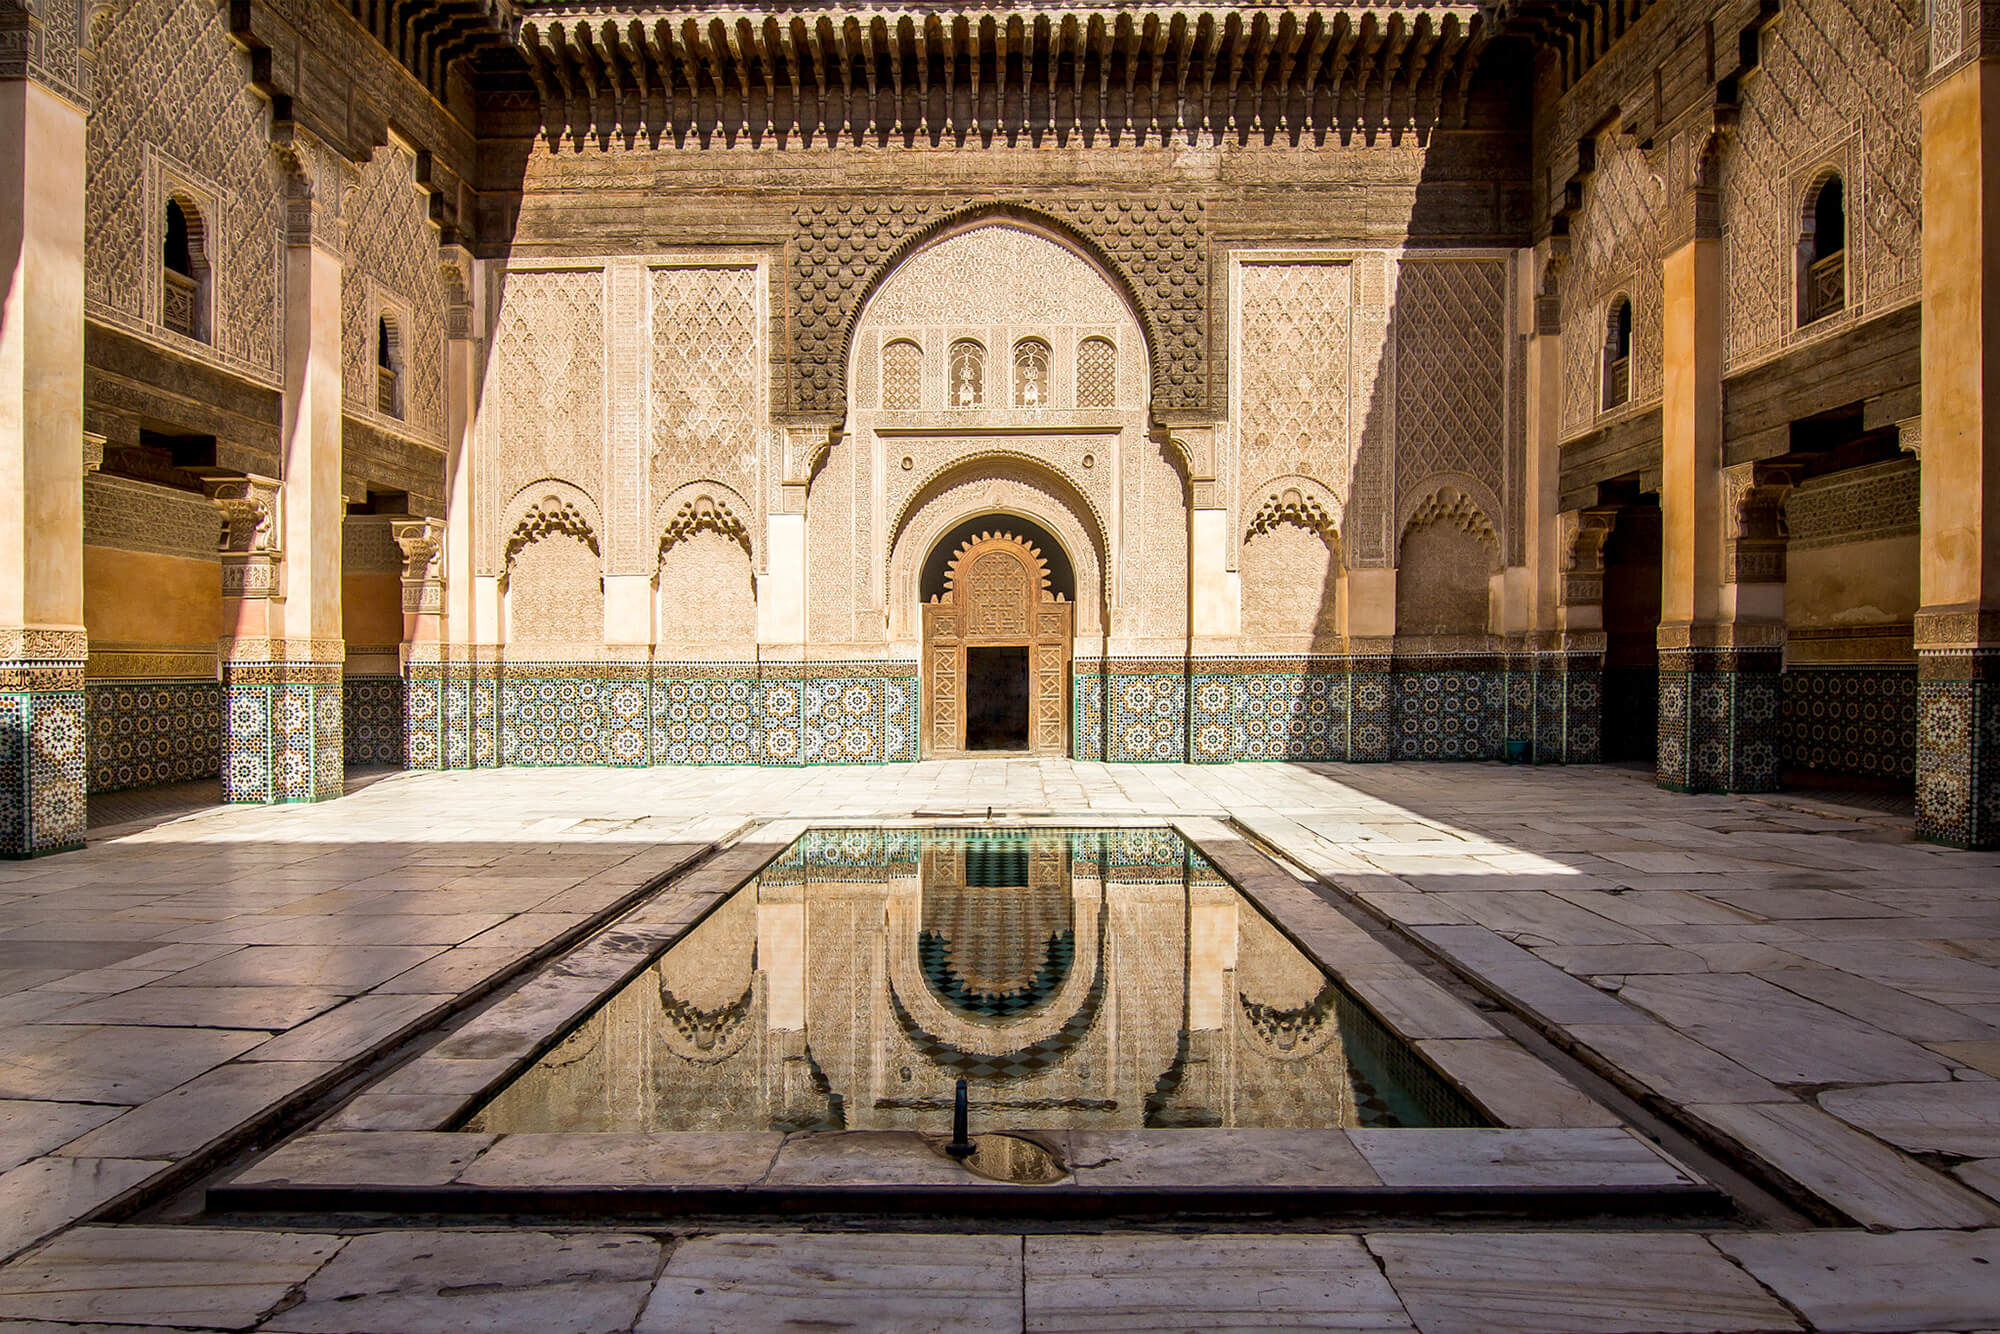 Sahara Desert Tour - Tap into the Magic of Marrakech where Old Meets New - Medersa Ben Youssef